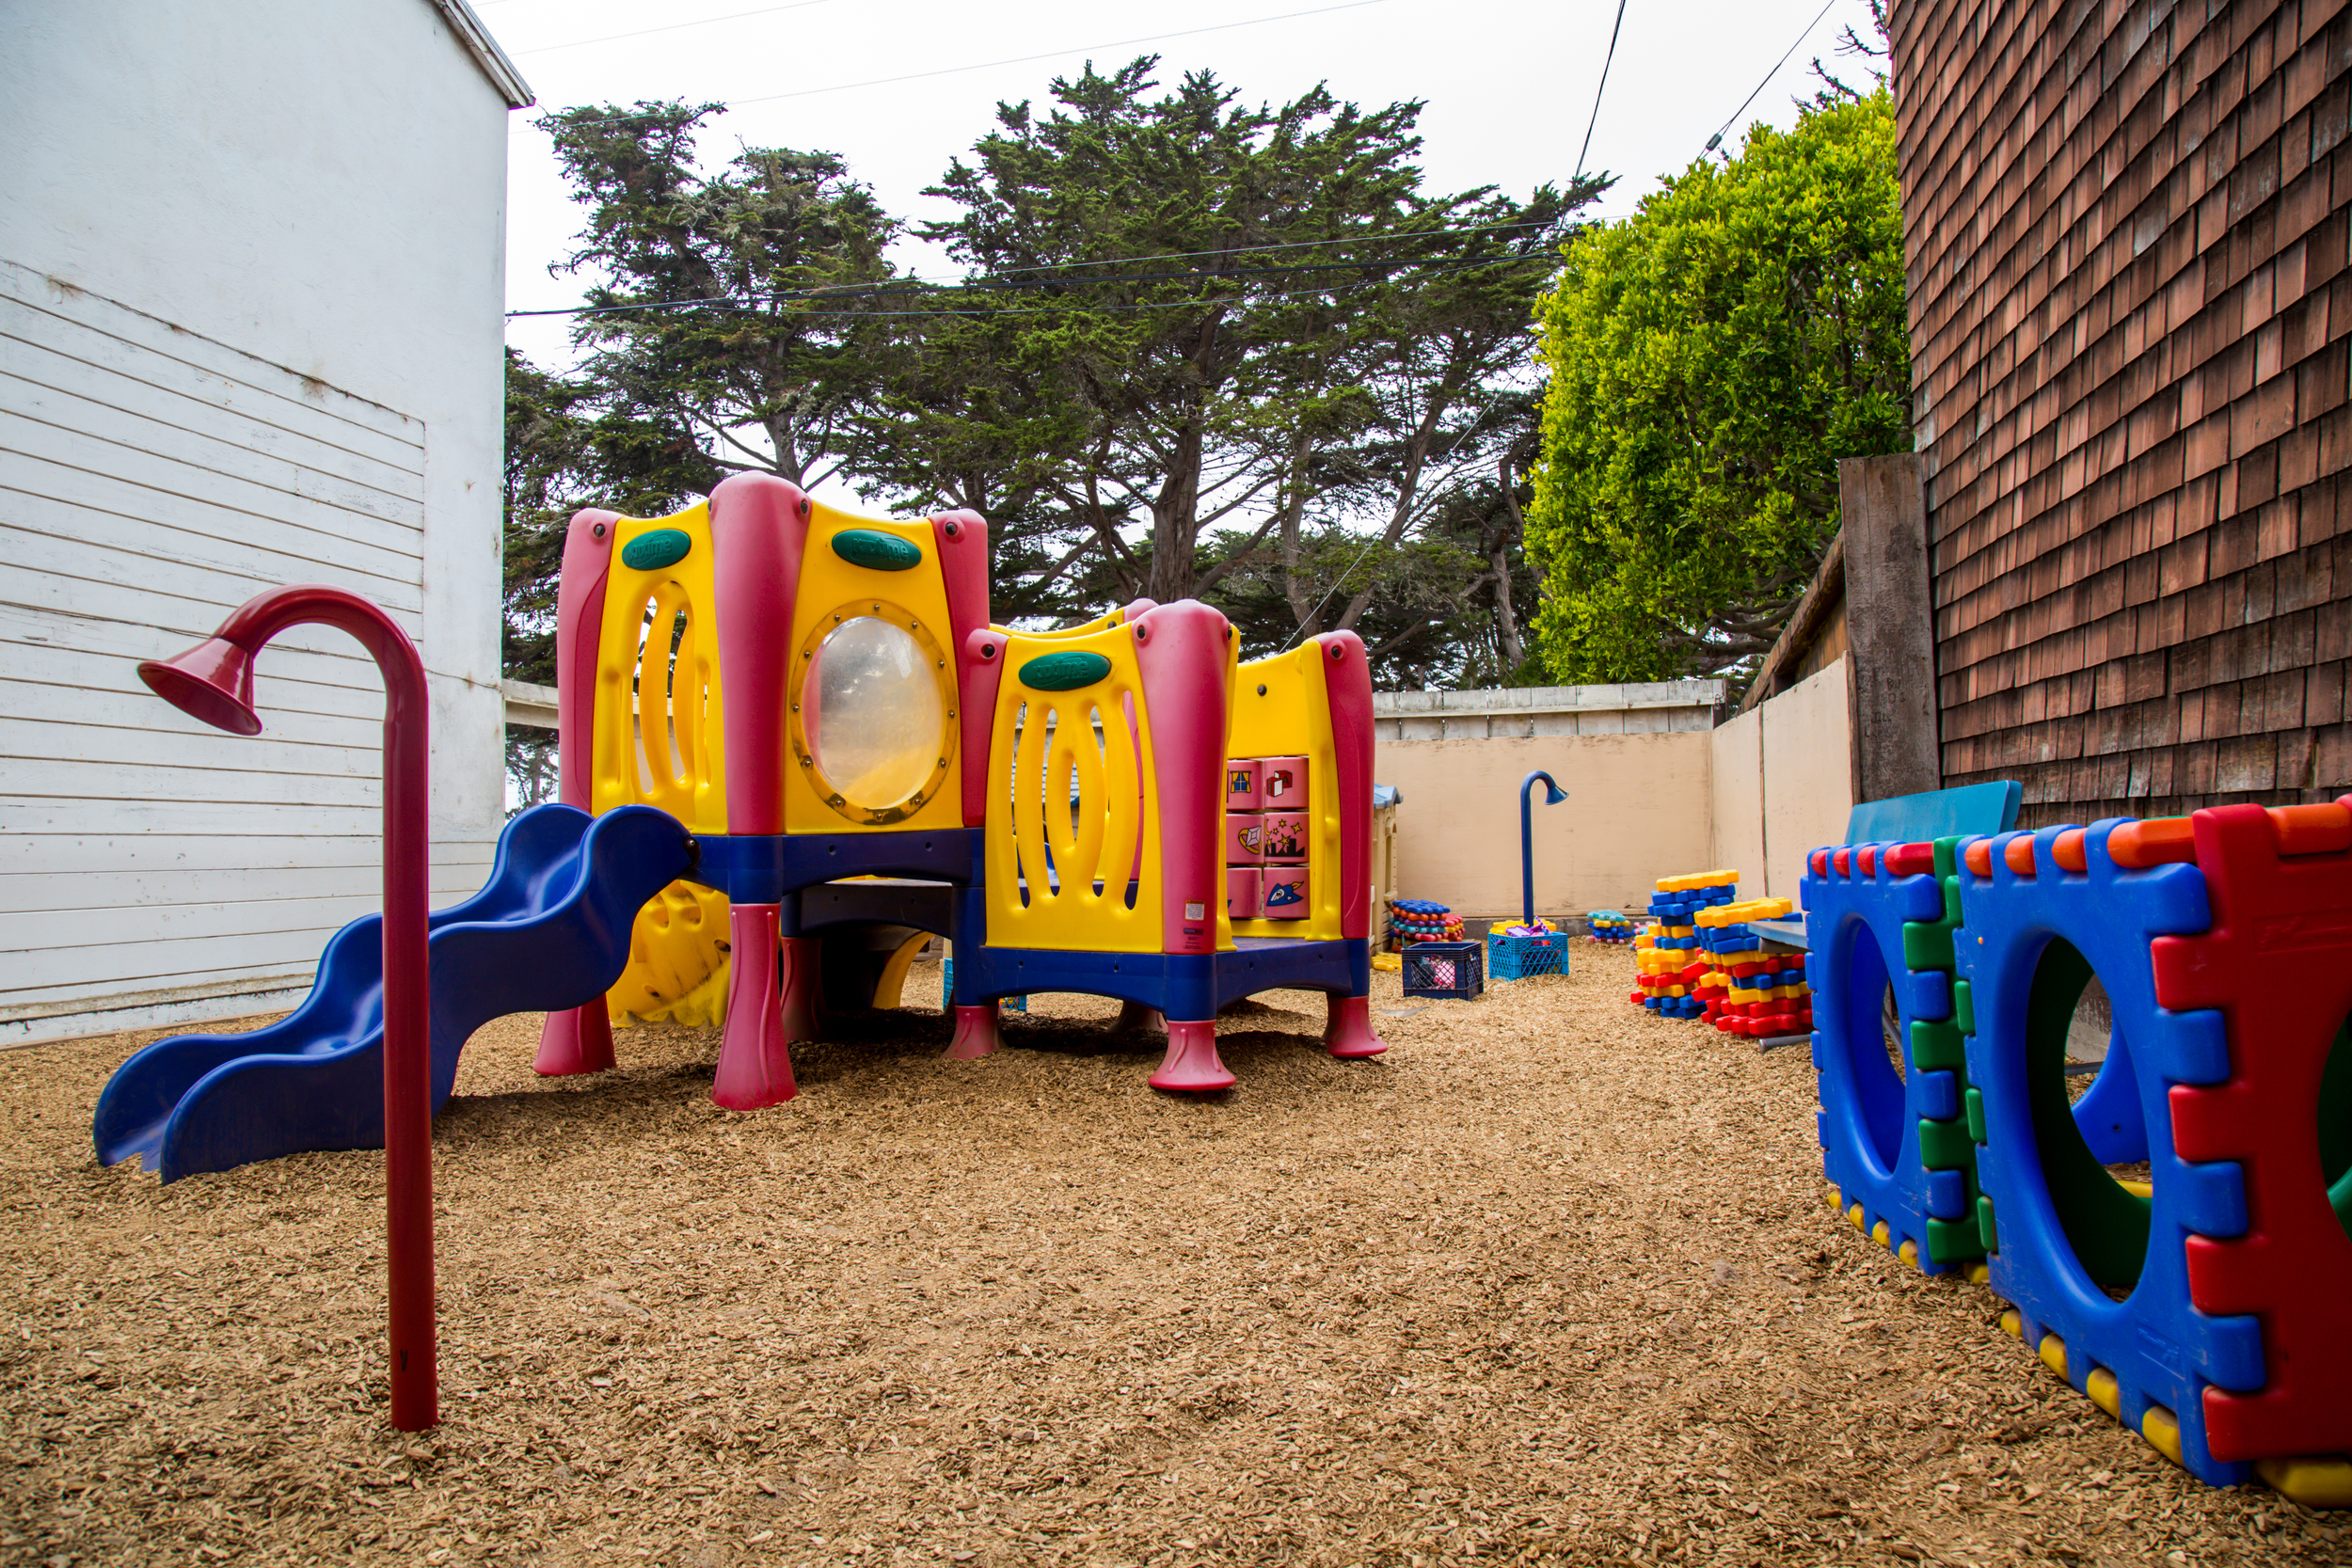 """The yard also features built-in """"telephones"""" for children to communicate to each other across the playground."""